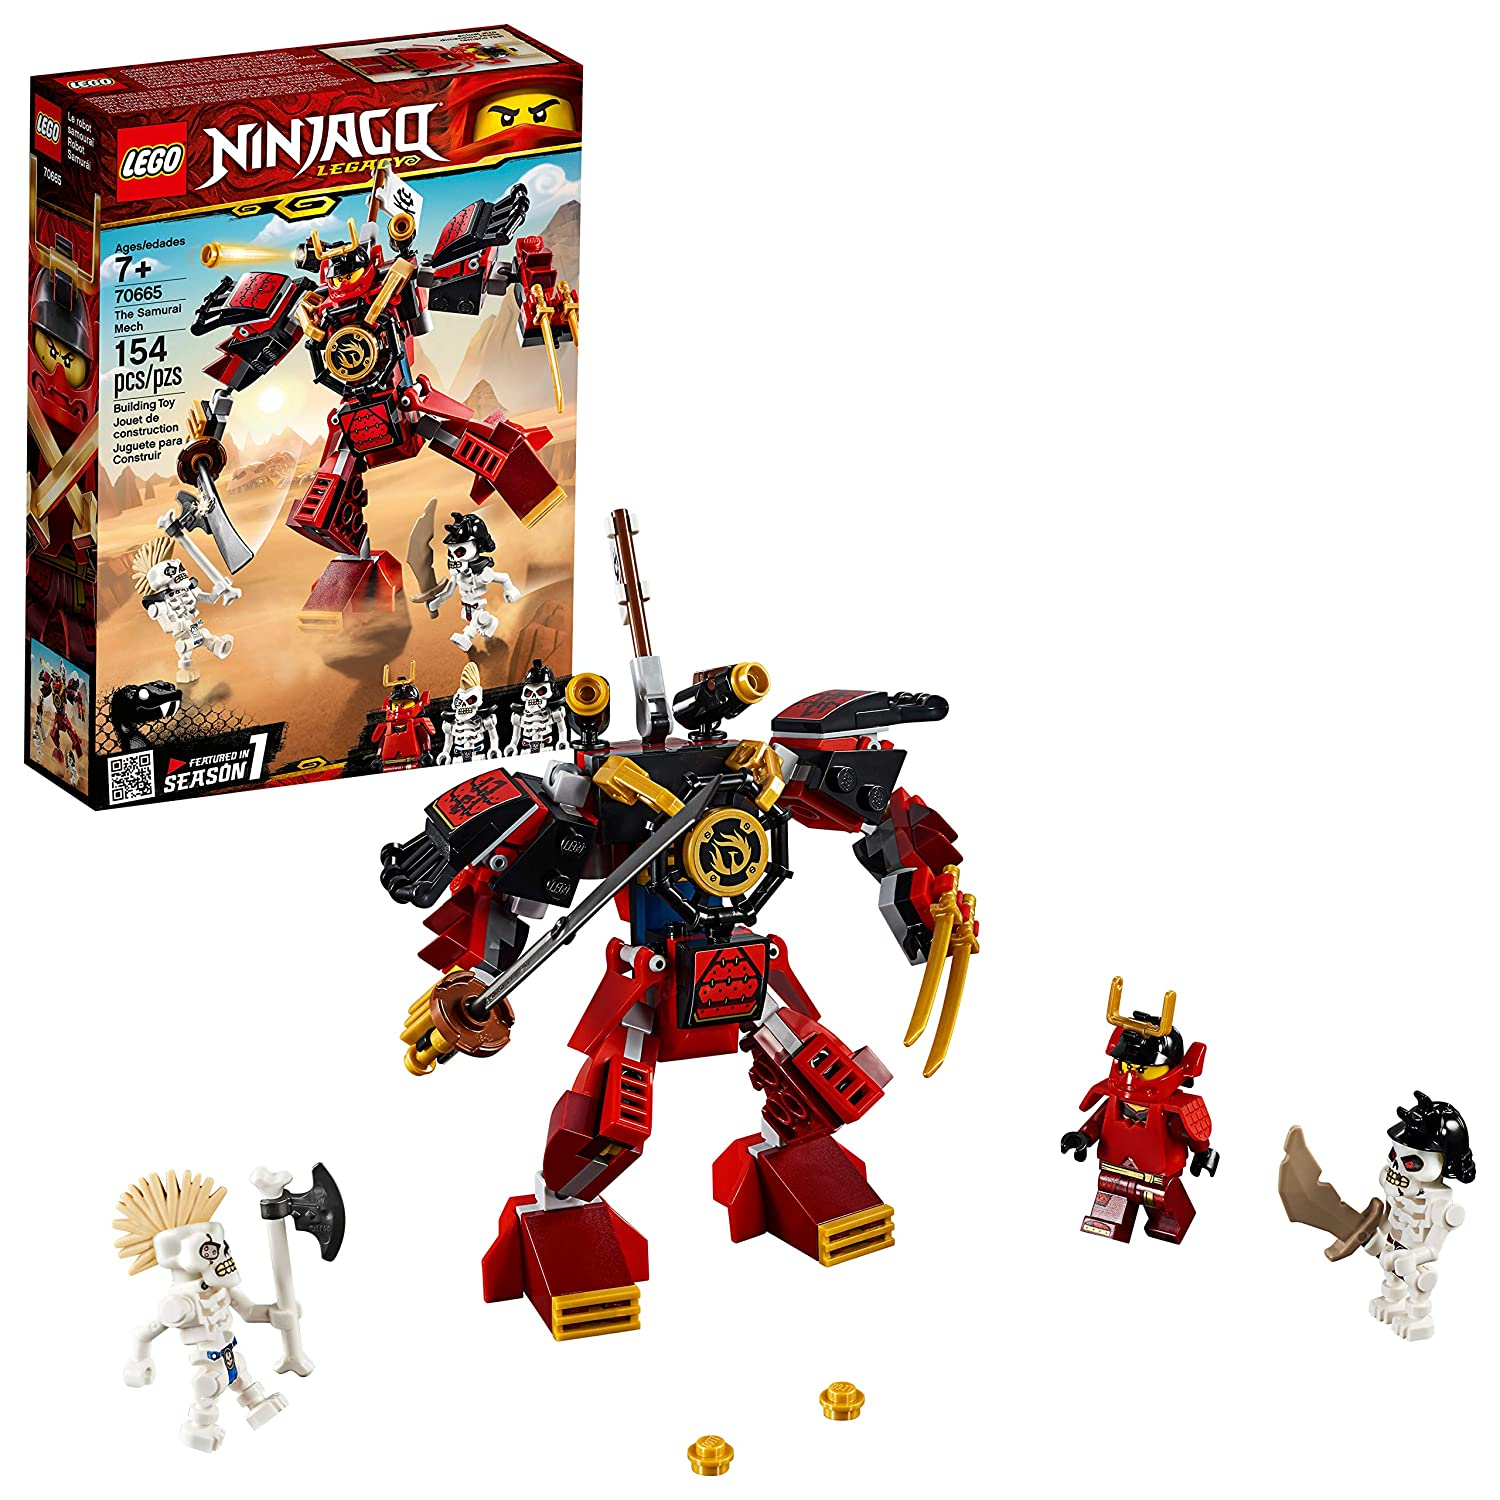 LEGO NINJAGO Legacy Samurai Mech 70665 Toy Mech Building Kitcomes with NINJAGO Minifigures, Stud Shooters and a Toy Sword for Imaginative Play (154 Pieces)